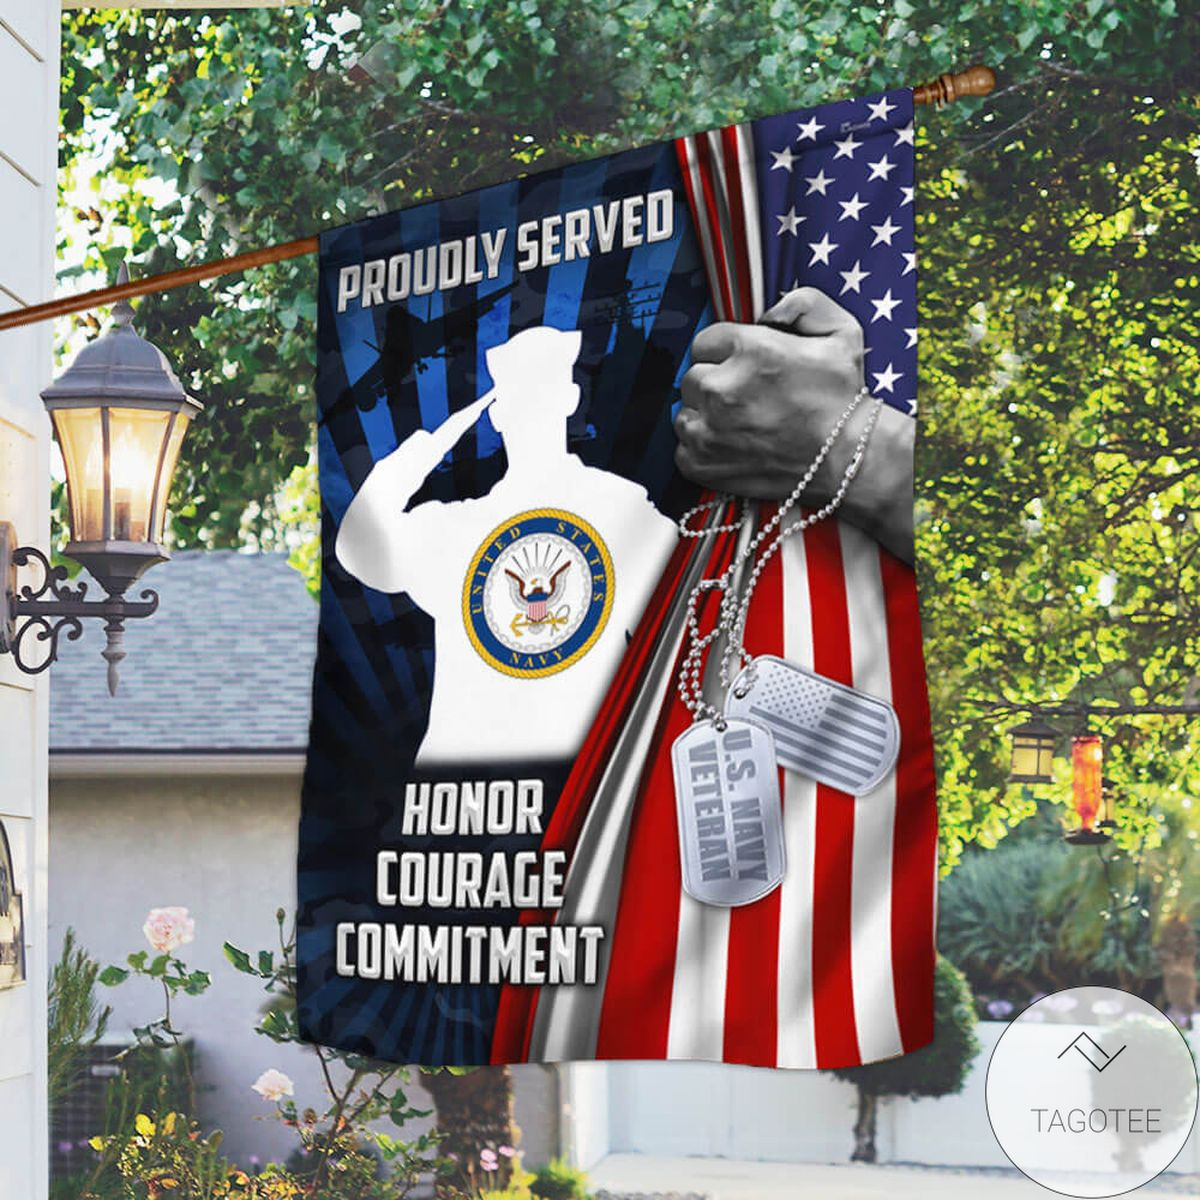 U.s. Navy Veteran Proudly Serve Honor Courage Commitment Flag